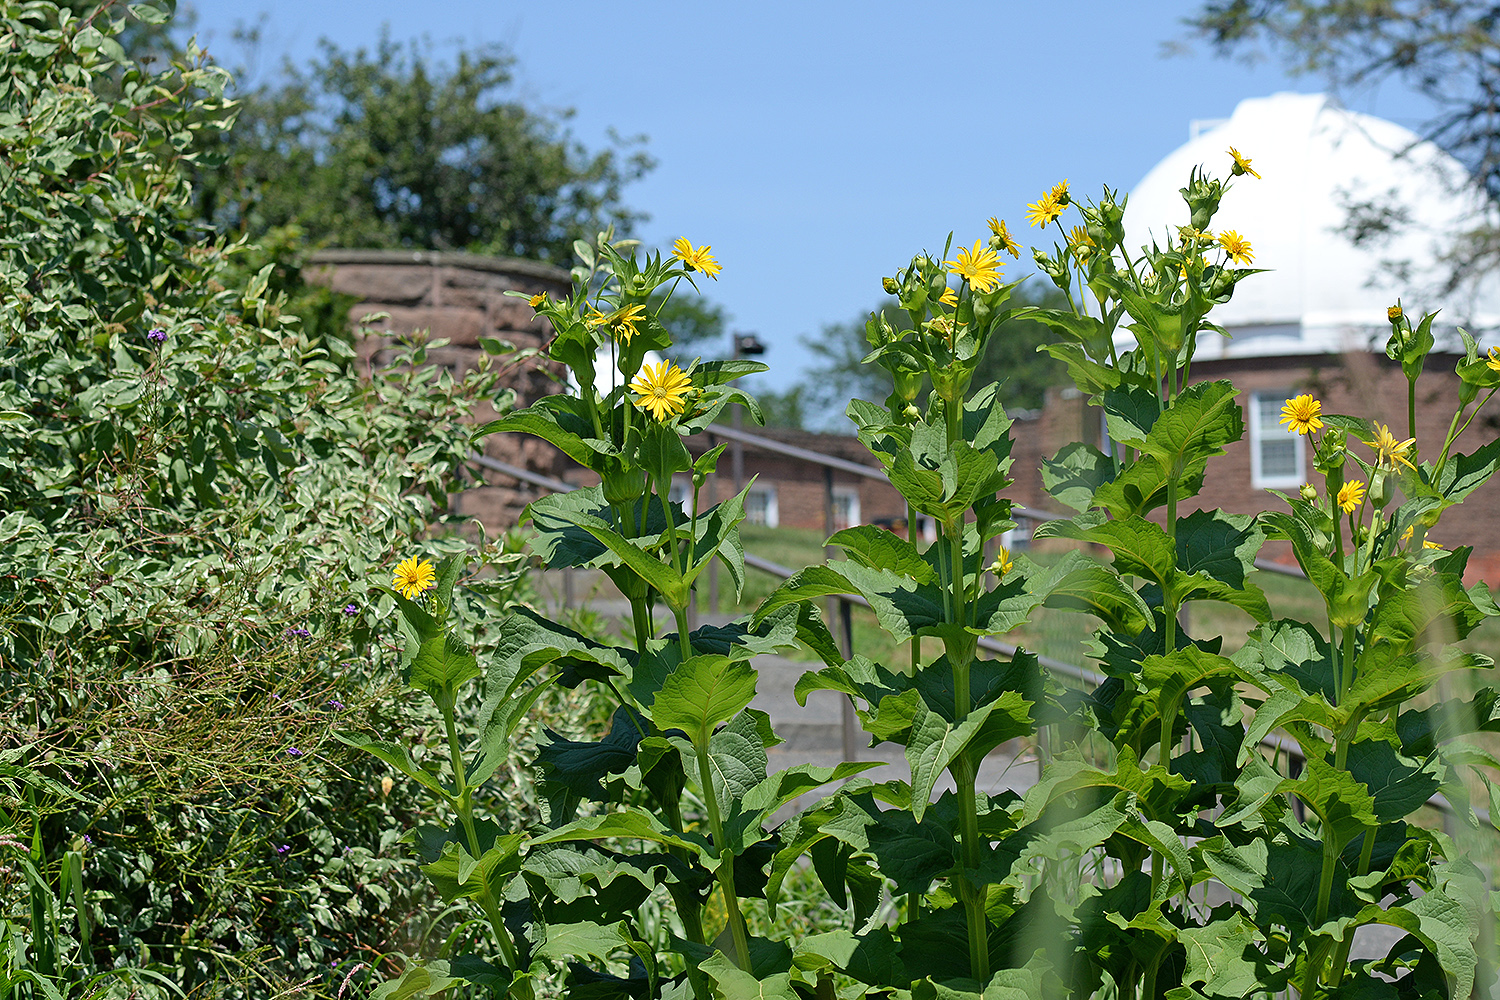 Wild sunflowers bloom in the West College Courtyard near Van Vleck Observatory.